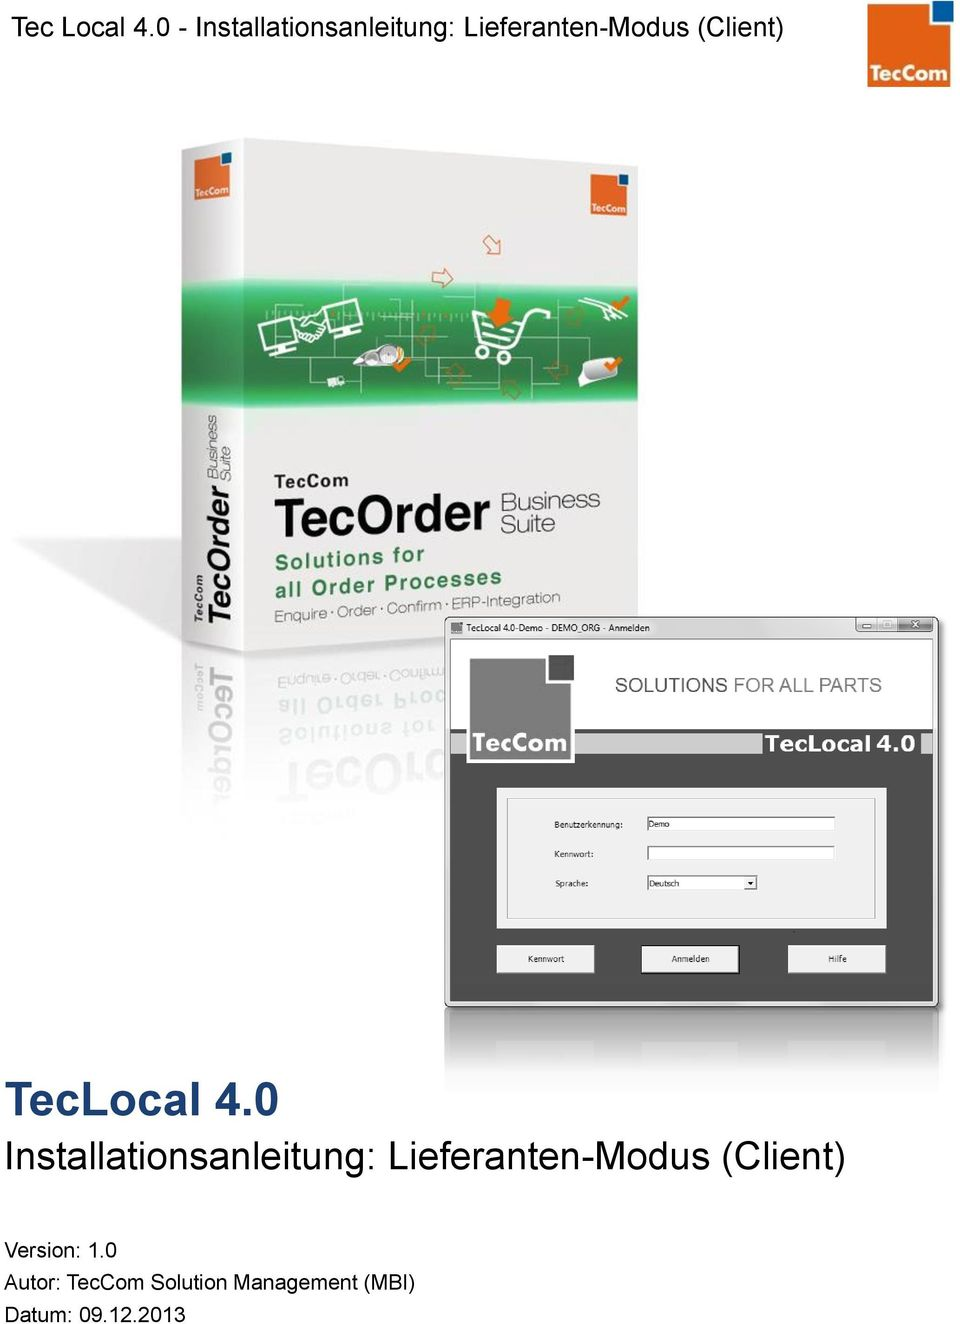 (Client) TecLocal 4.